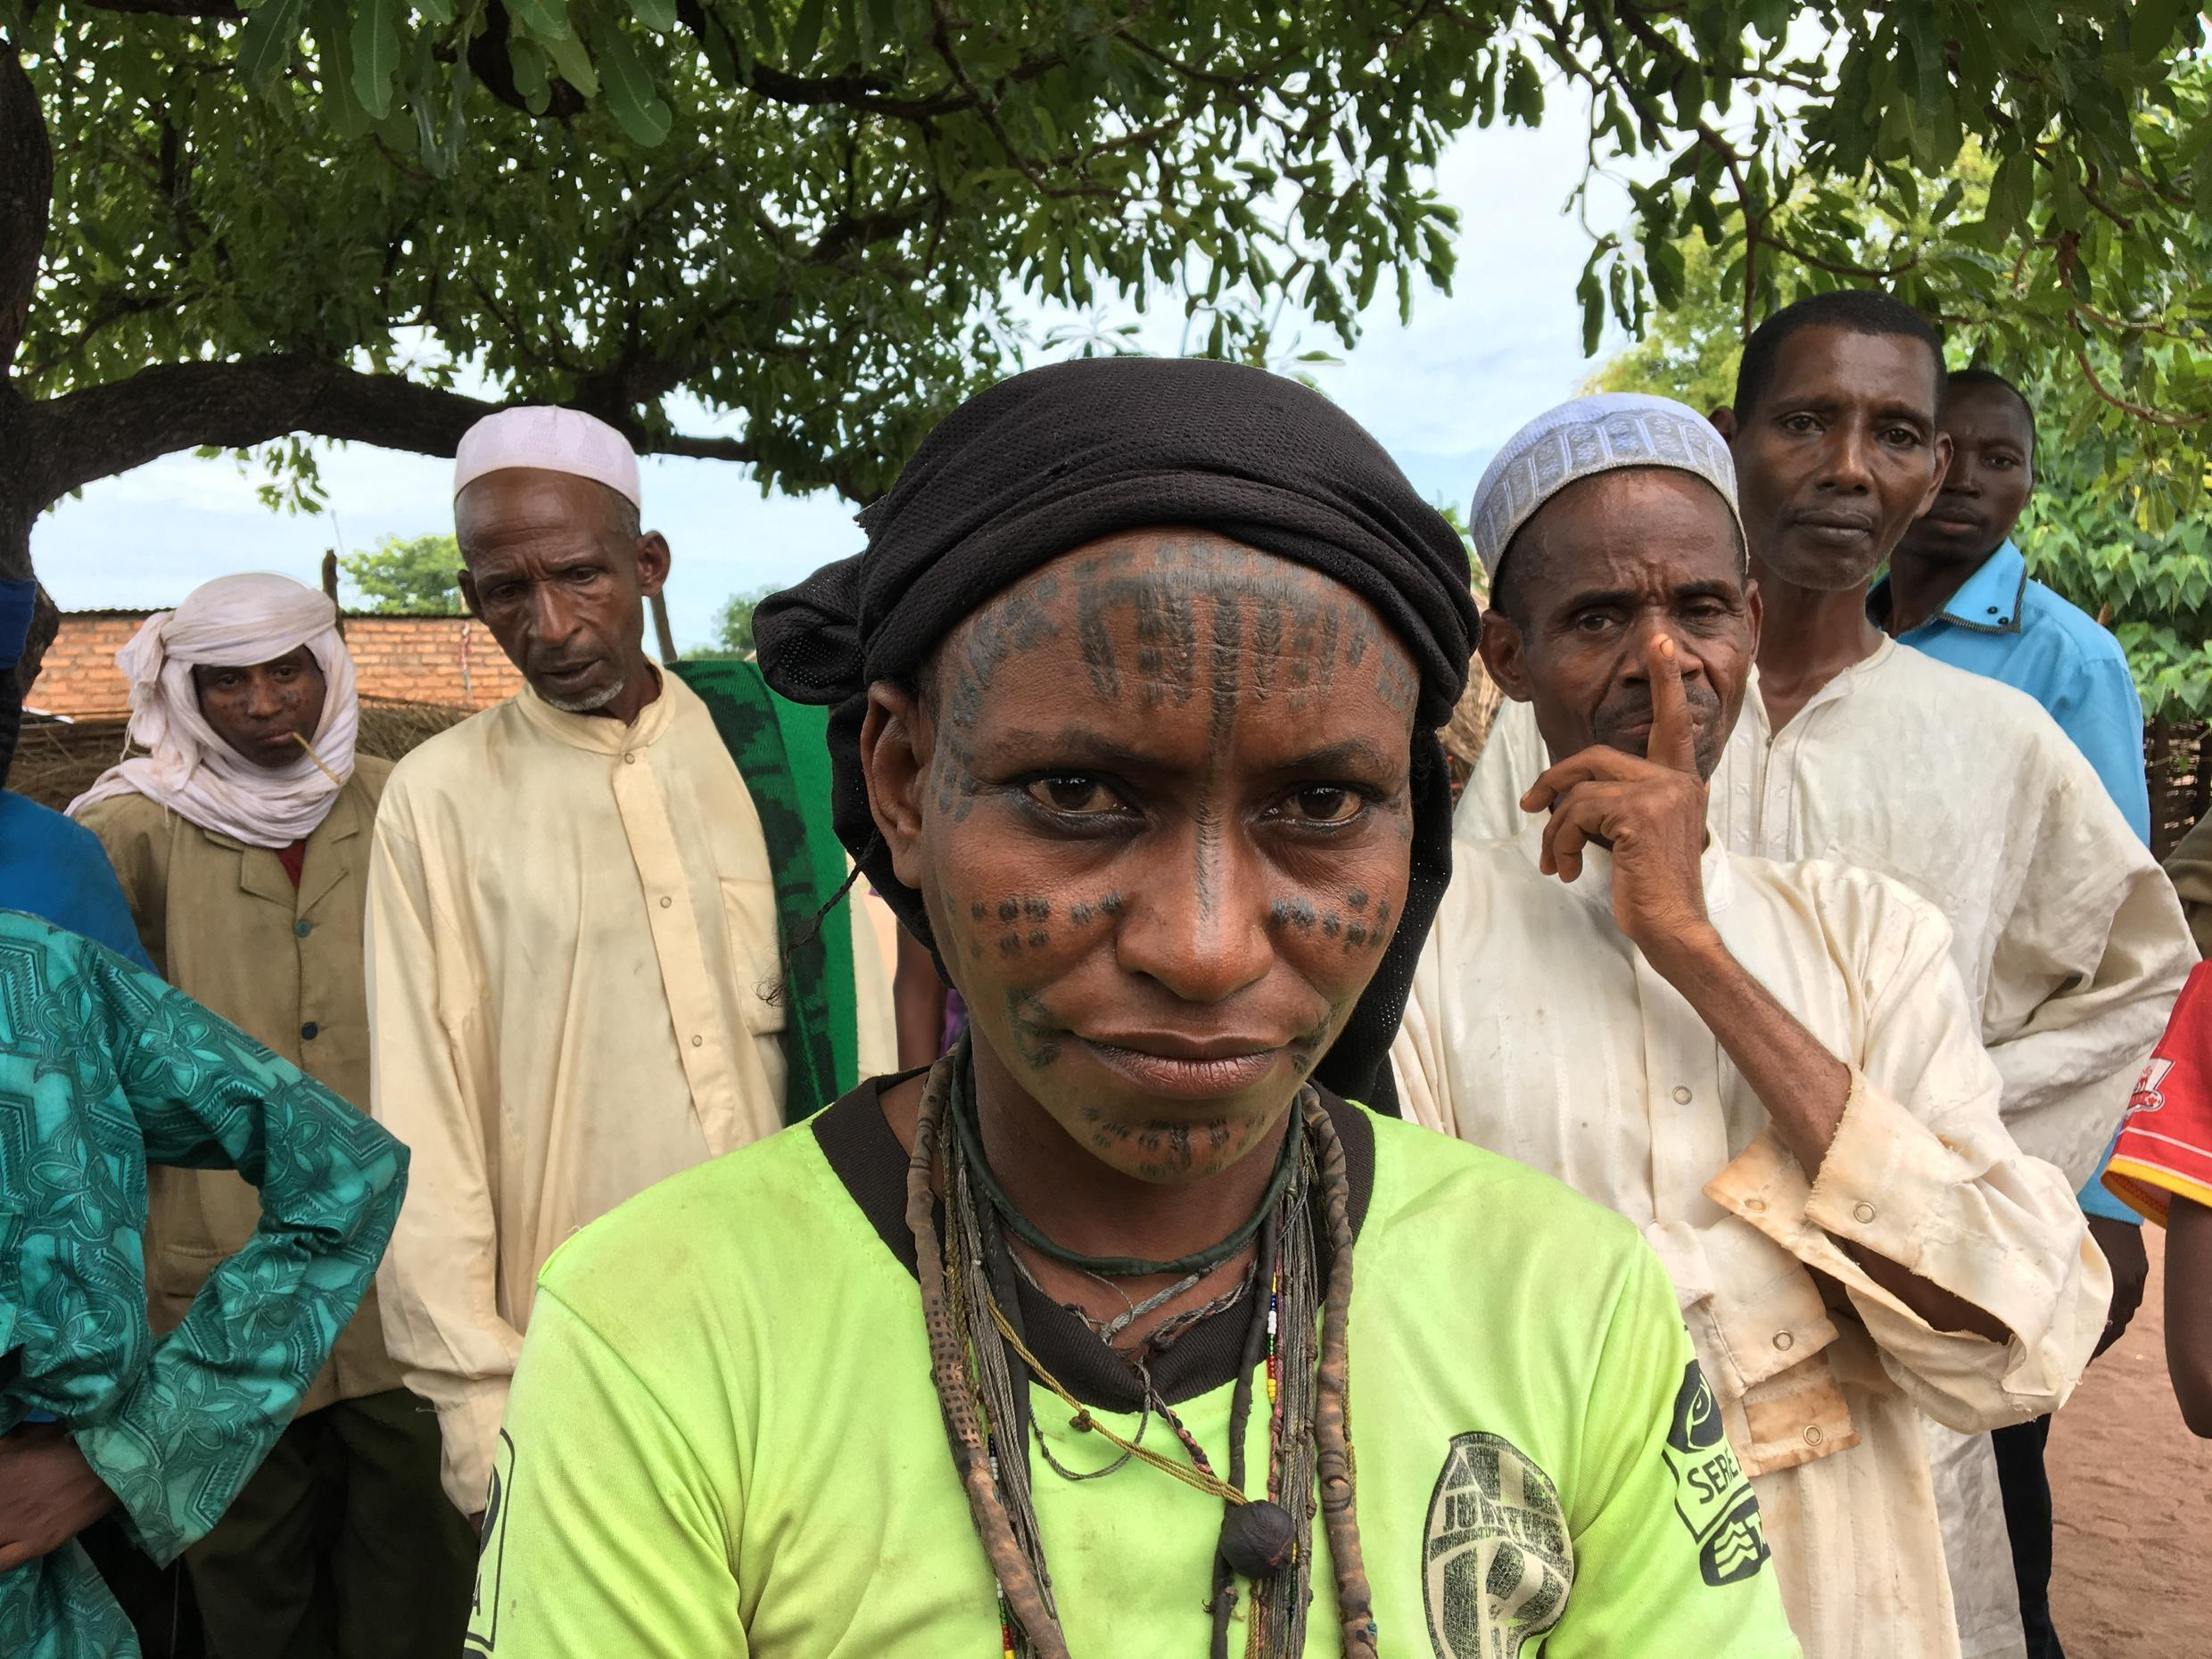 Aisha Togodi, 30, a returnee from Bougila, CAR, who has lived in a southern Chad returnee camp for 4 years